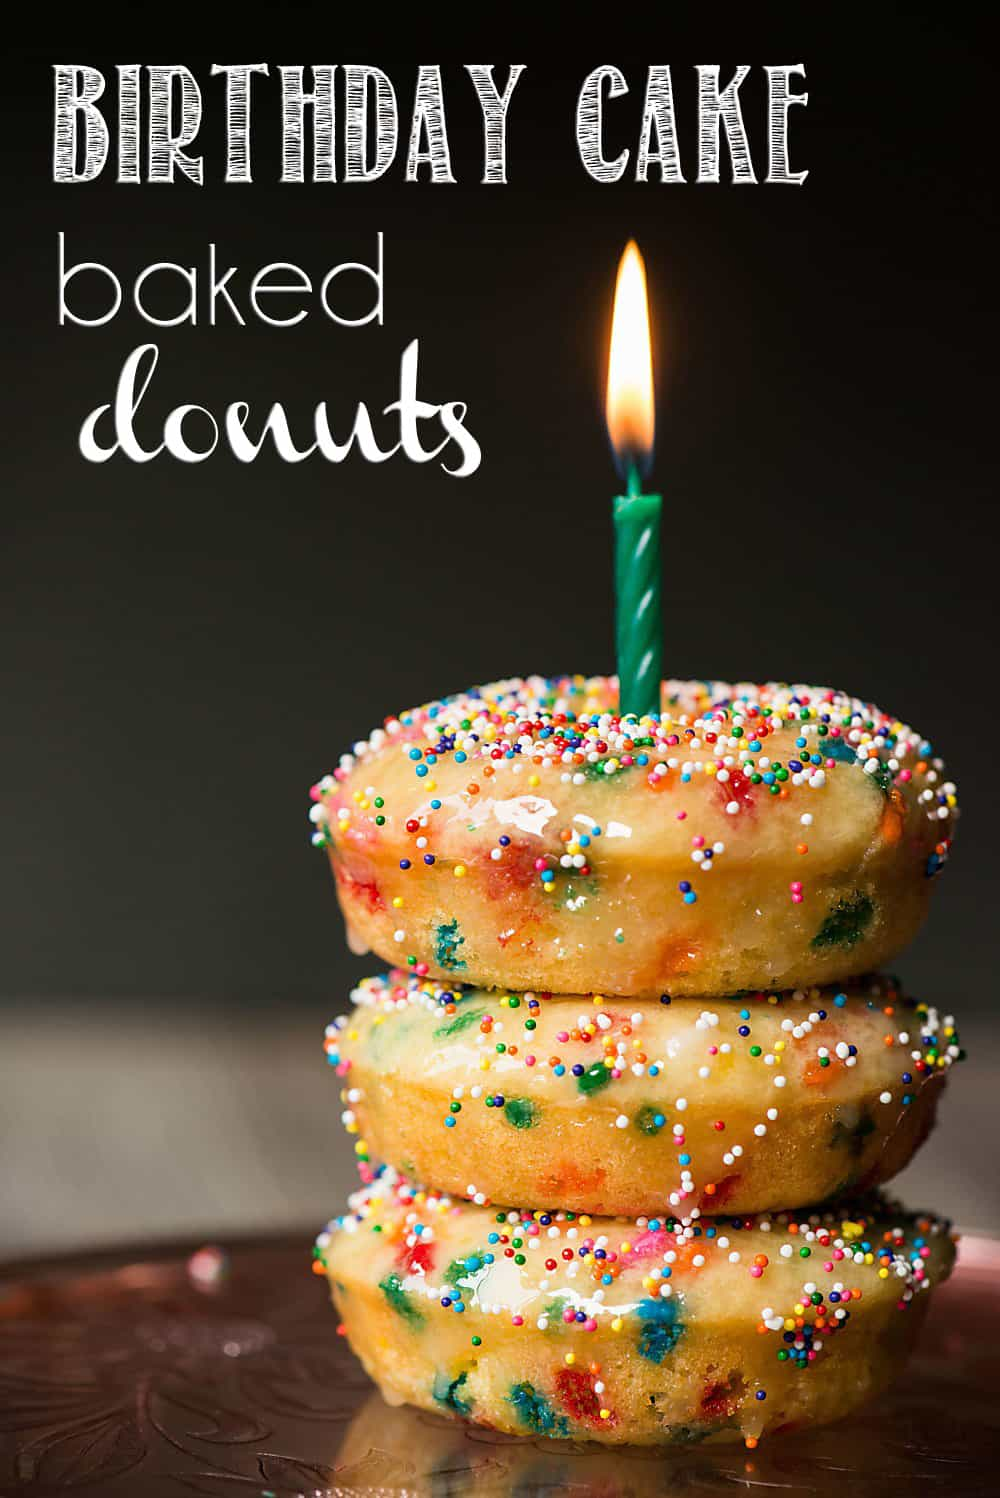 Birthday Cake Baked Donuts RECIPE VIDEO